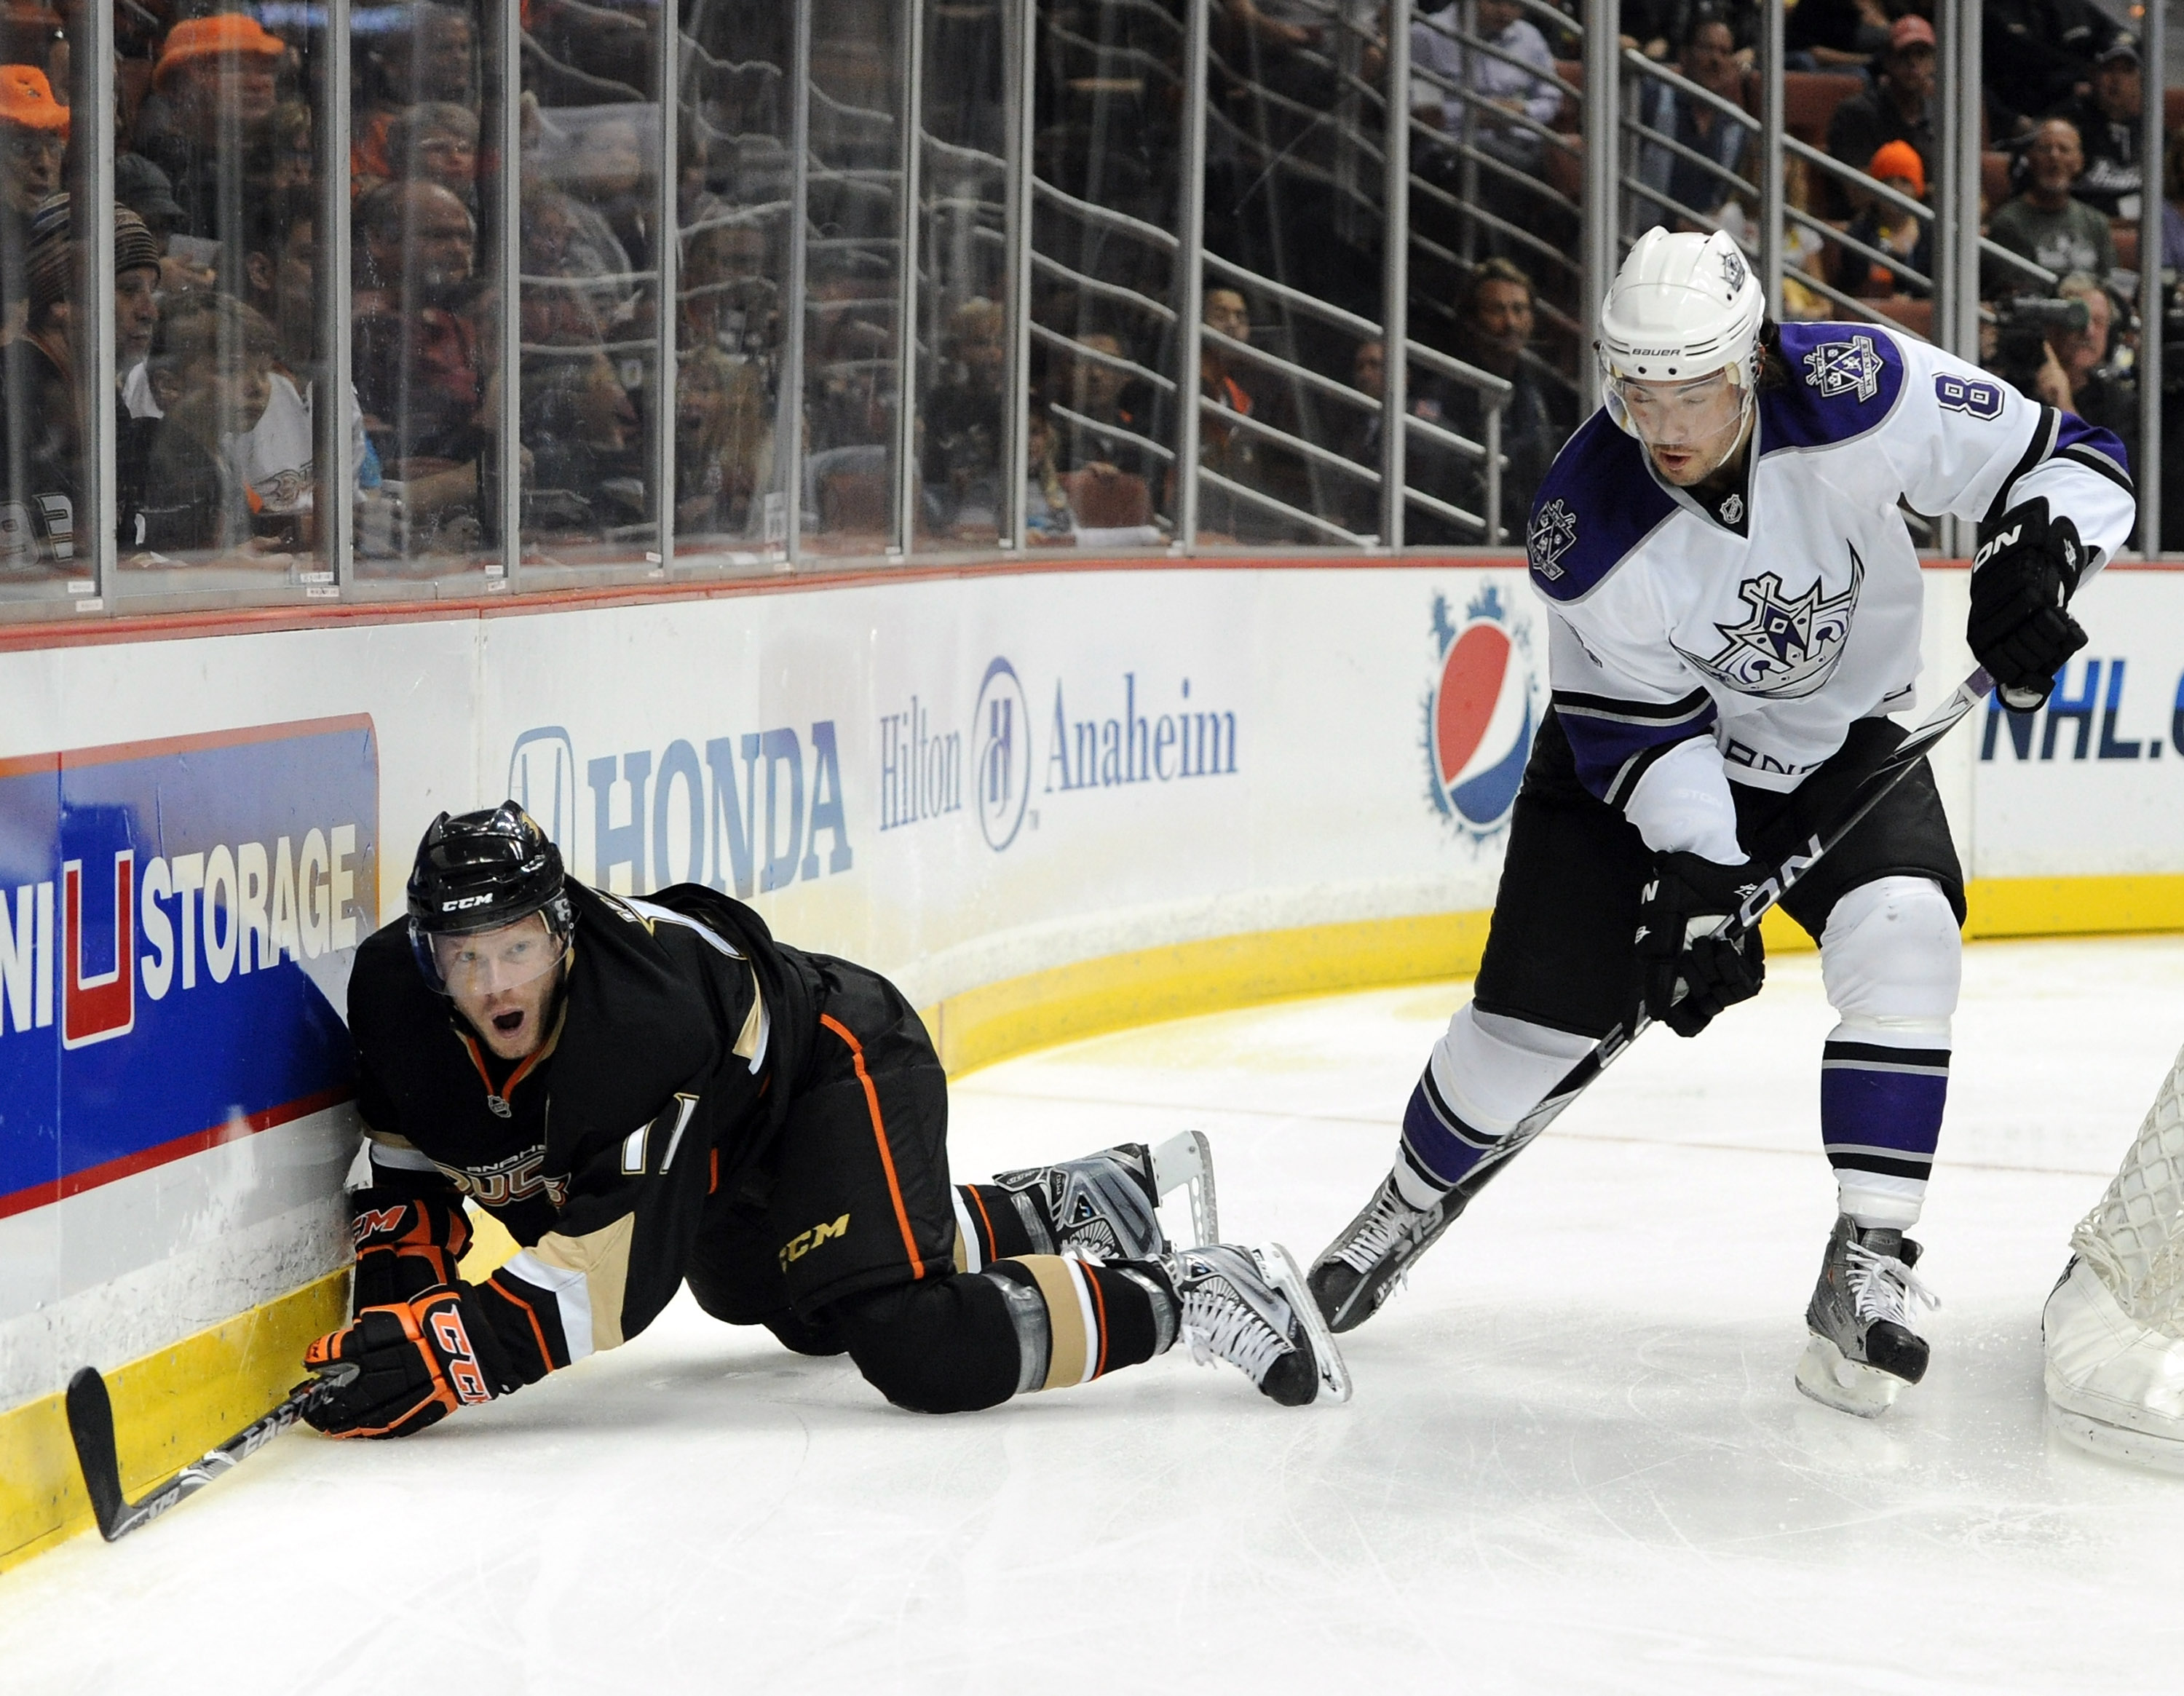 ANAHEIM, CA - OCTOBER 03:  Drew Doughty #8 of the Los Angeles Kings takes a penalty as he knocks Jason Blake #33 of the Anaheim Ducks to the ice during the first period at Honda Center on October 3, 2010 in Anaheim, California.  (Photo by Harry How/Getty